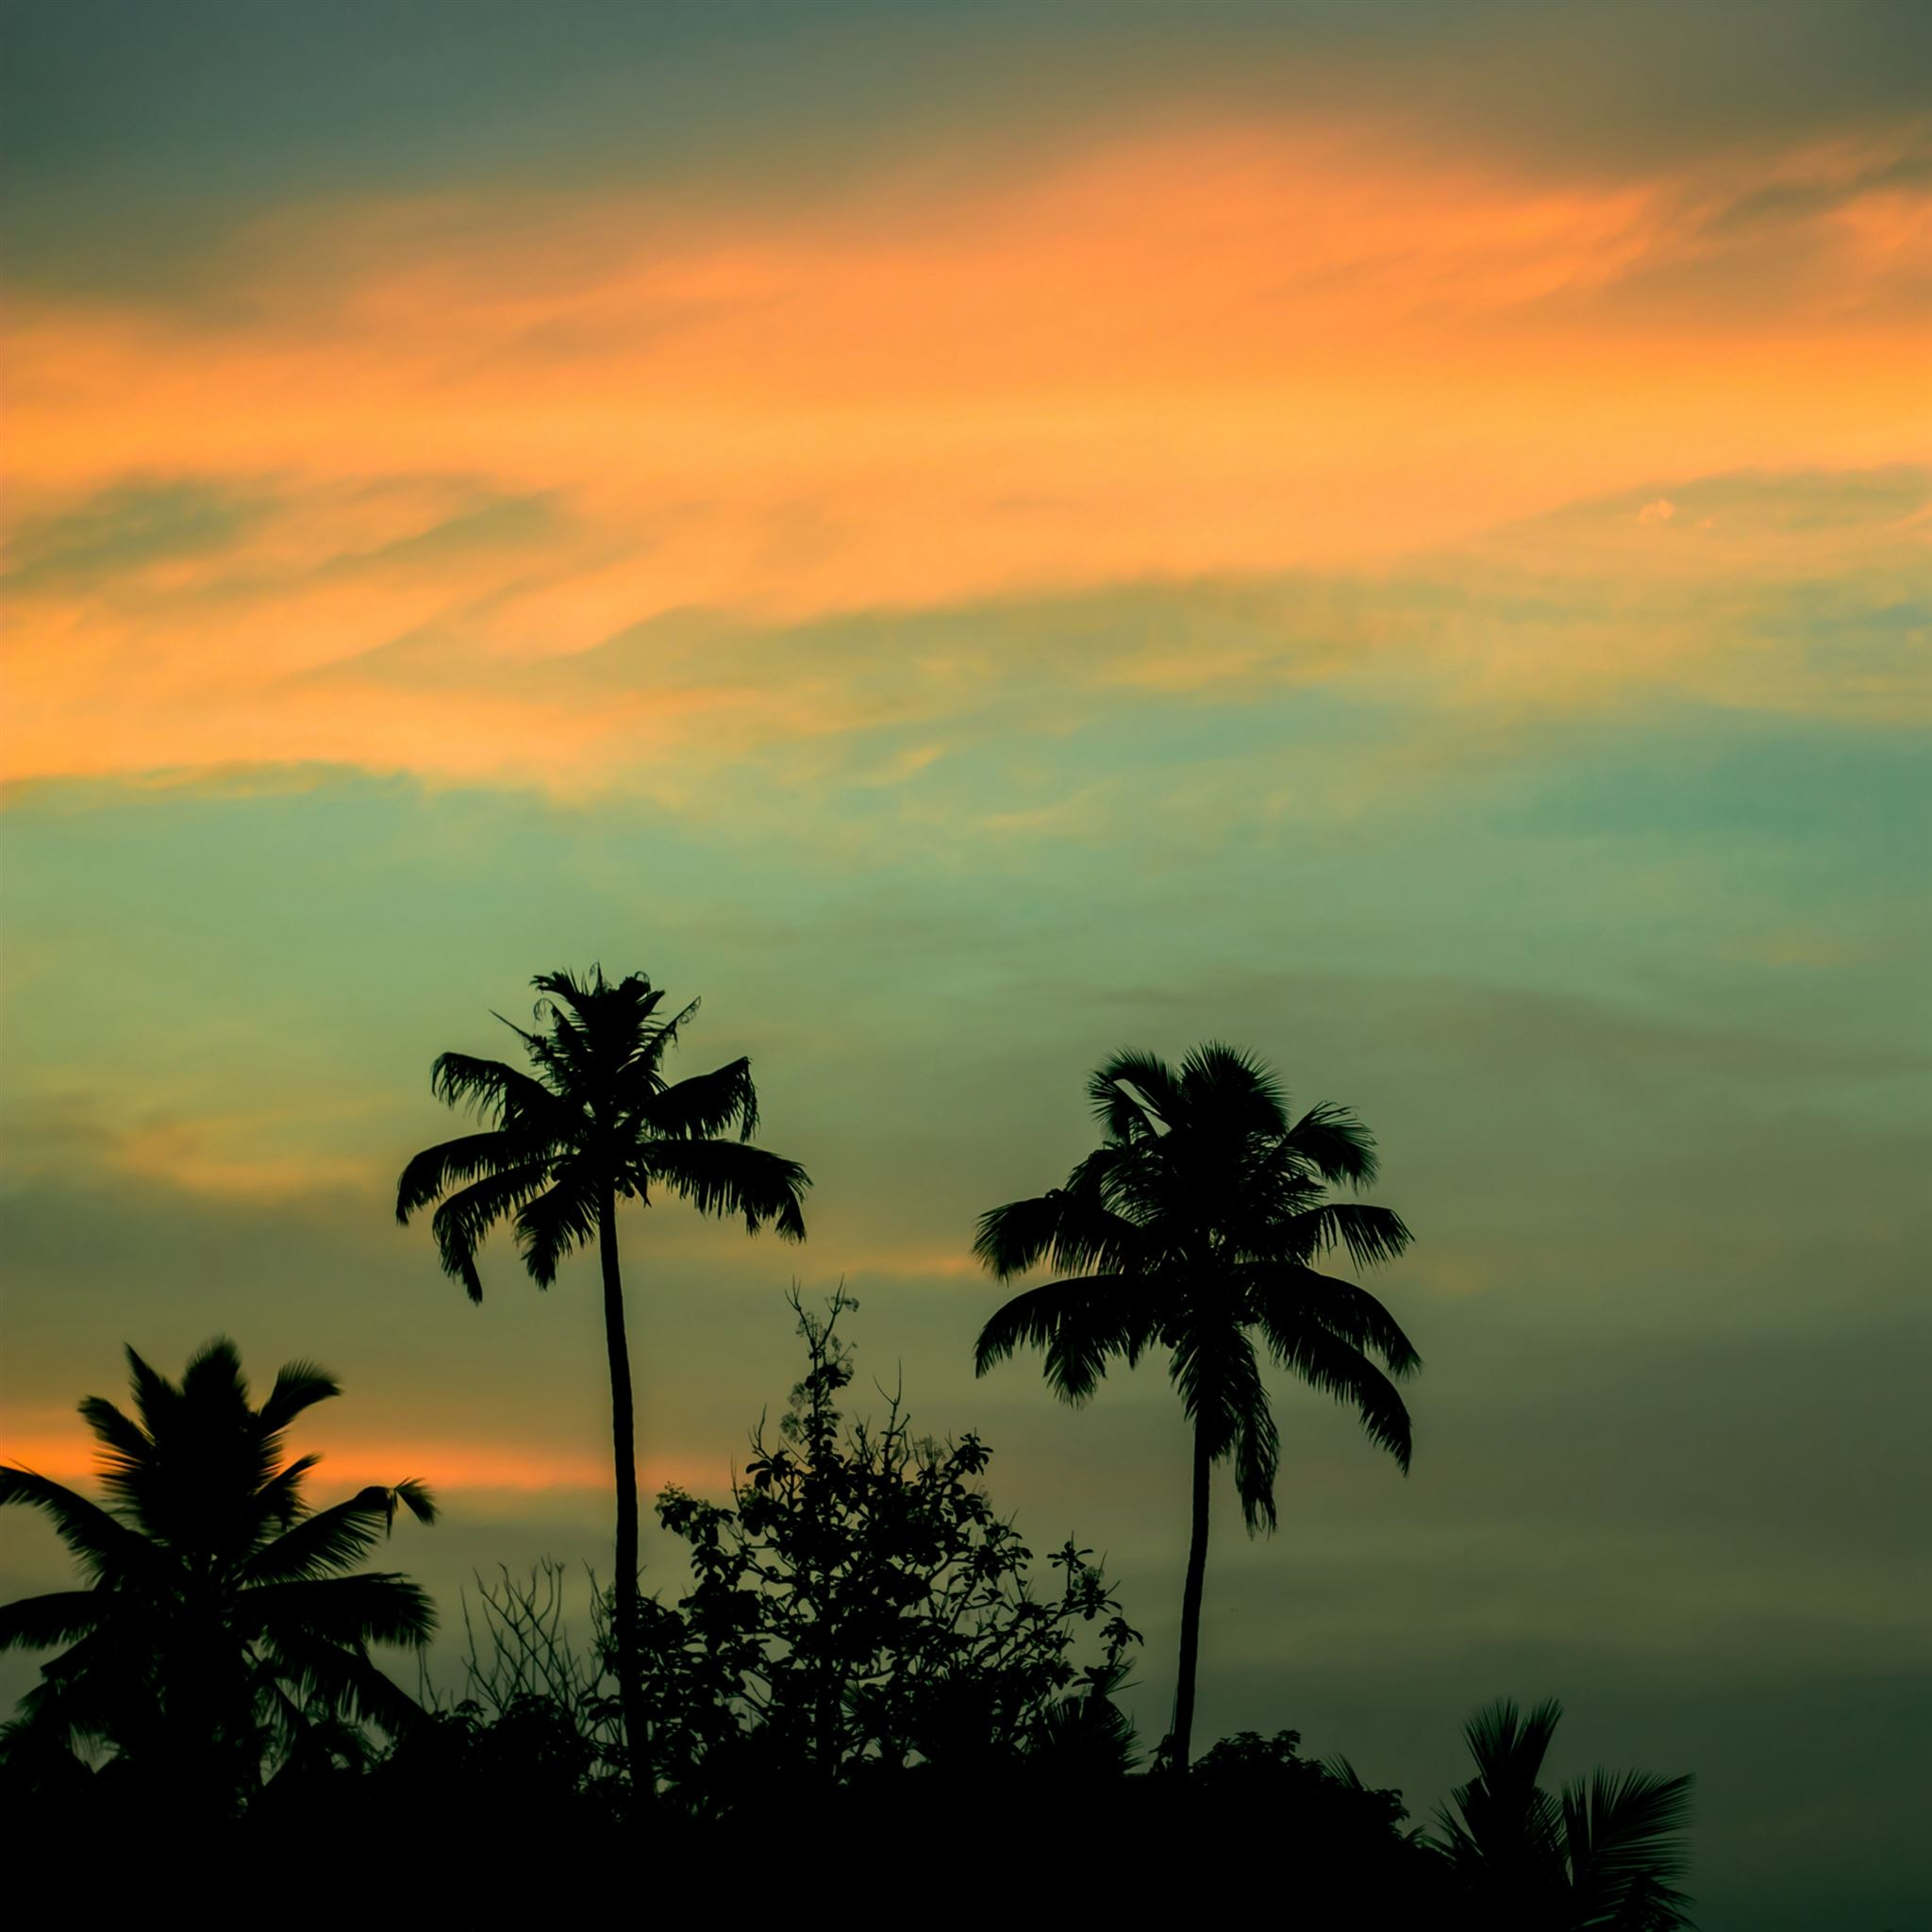 Palms Tree Sunset Sky iPad Pro wallpaper